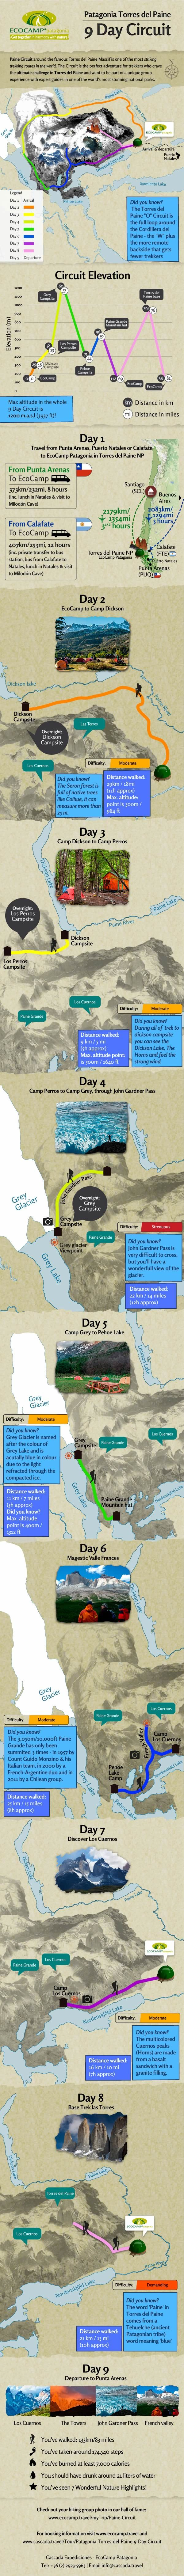 Patagonia Torres del Paine 9 Day Paine Circuit #Infographic. #torresdelpaine